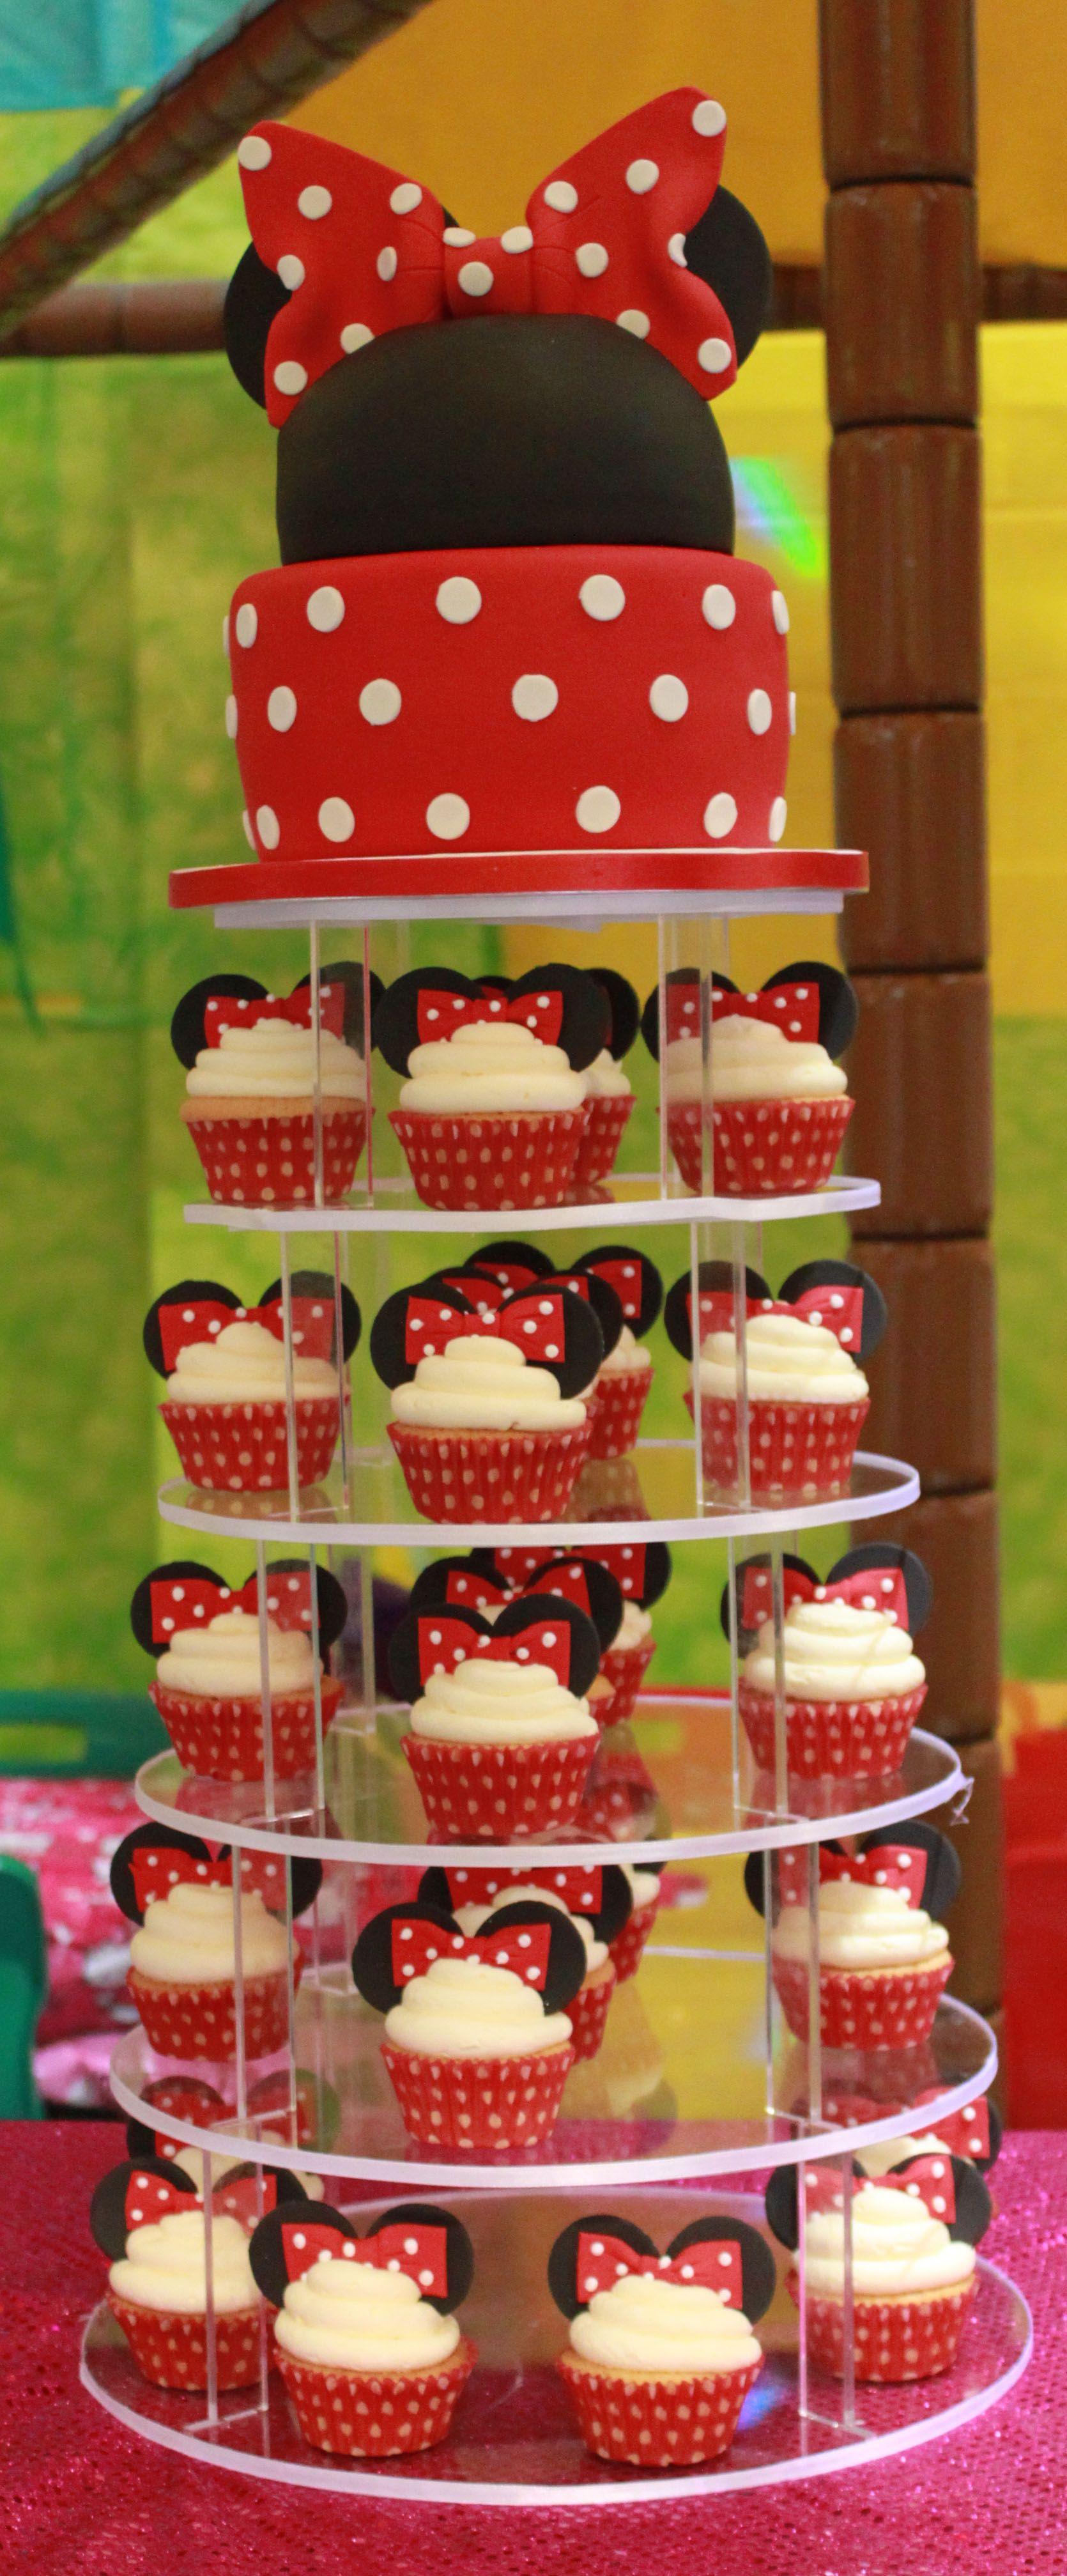 Minnie Mouse Cake And Cupcakes | Cupcake images, Mouse cake and ...